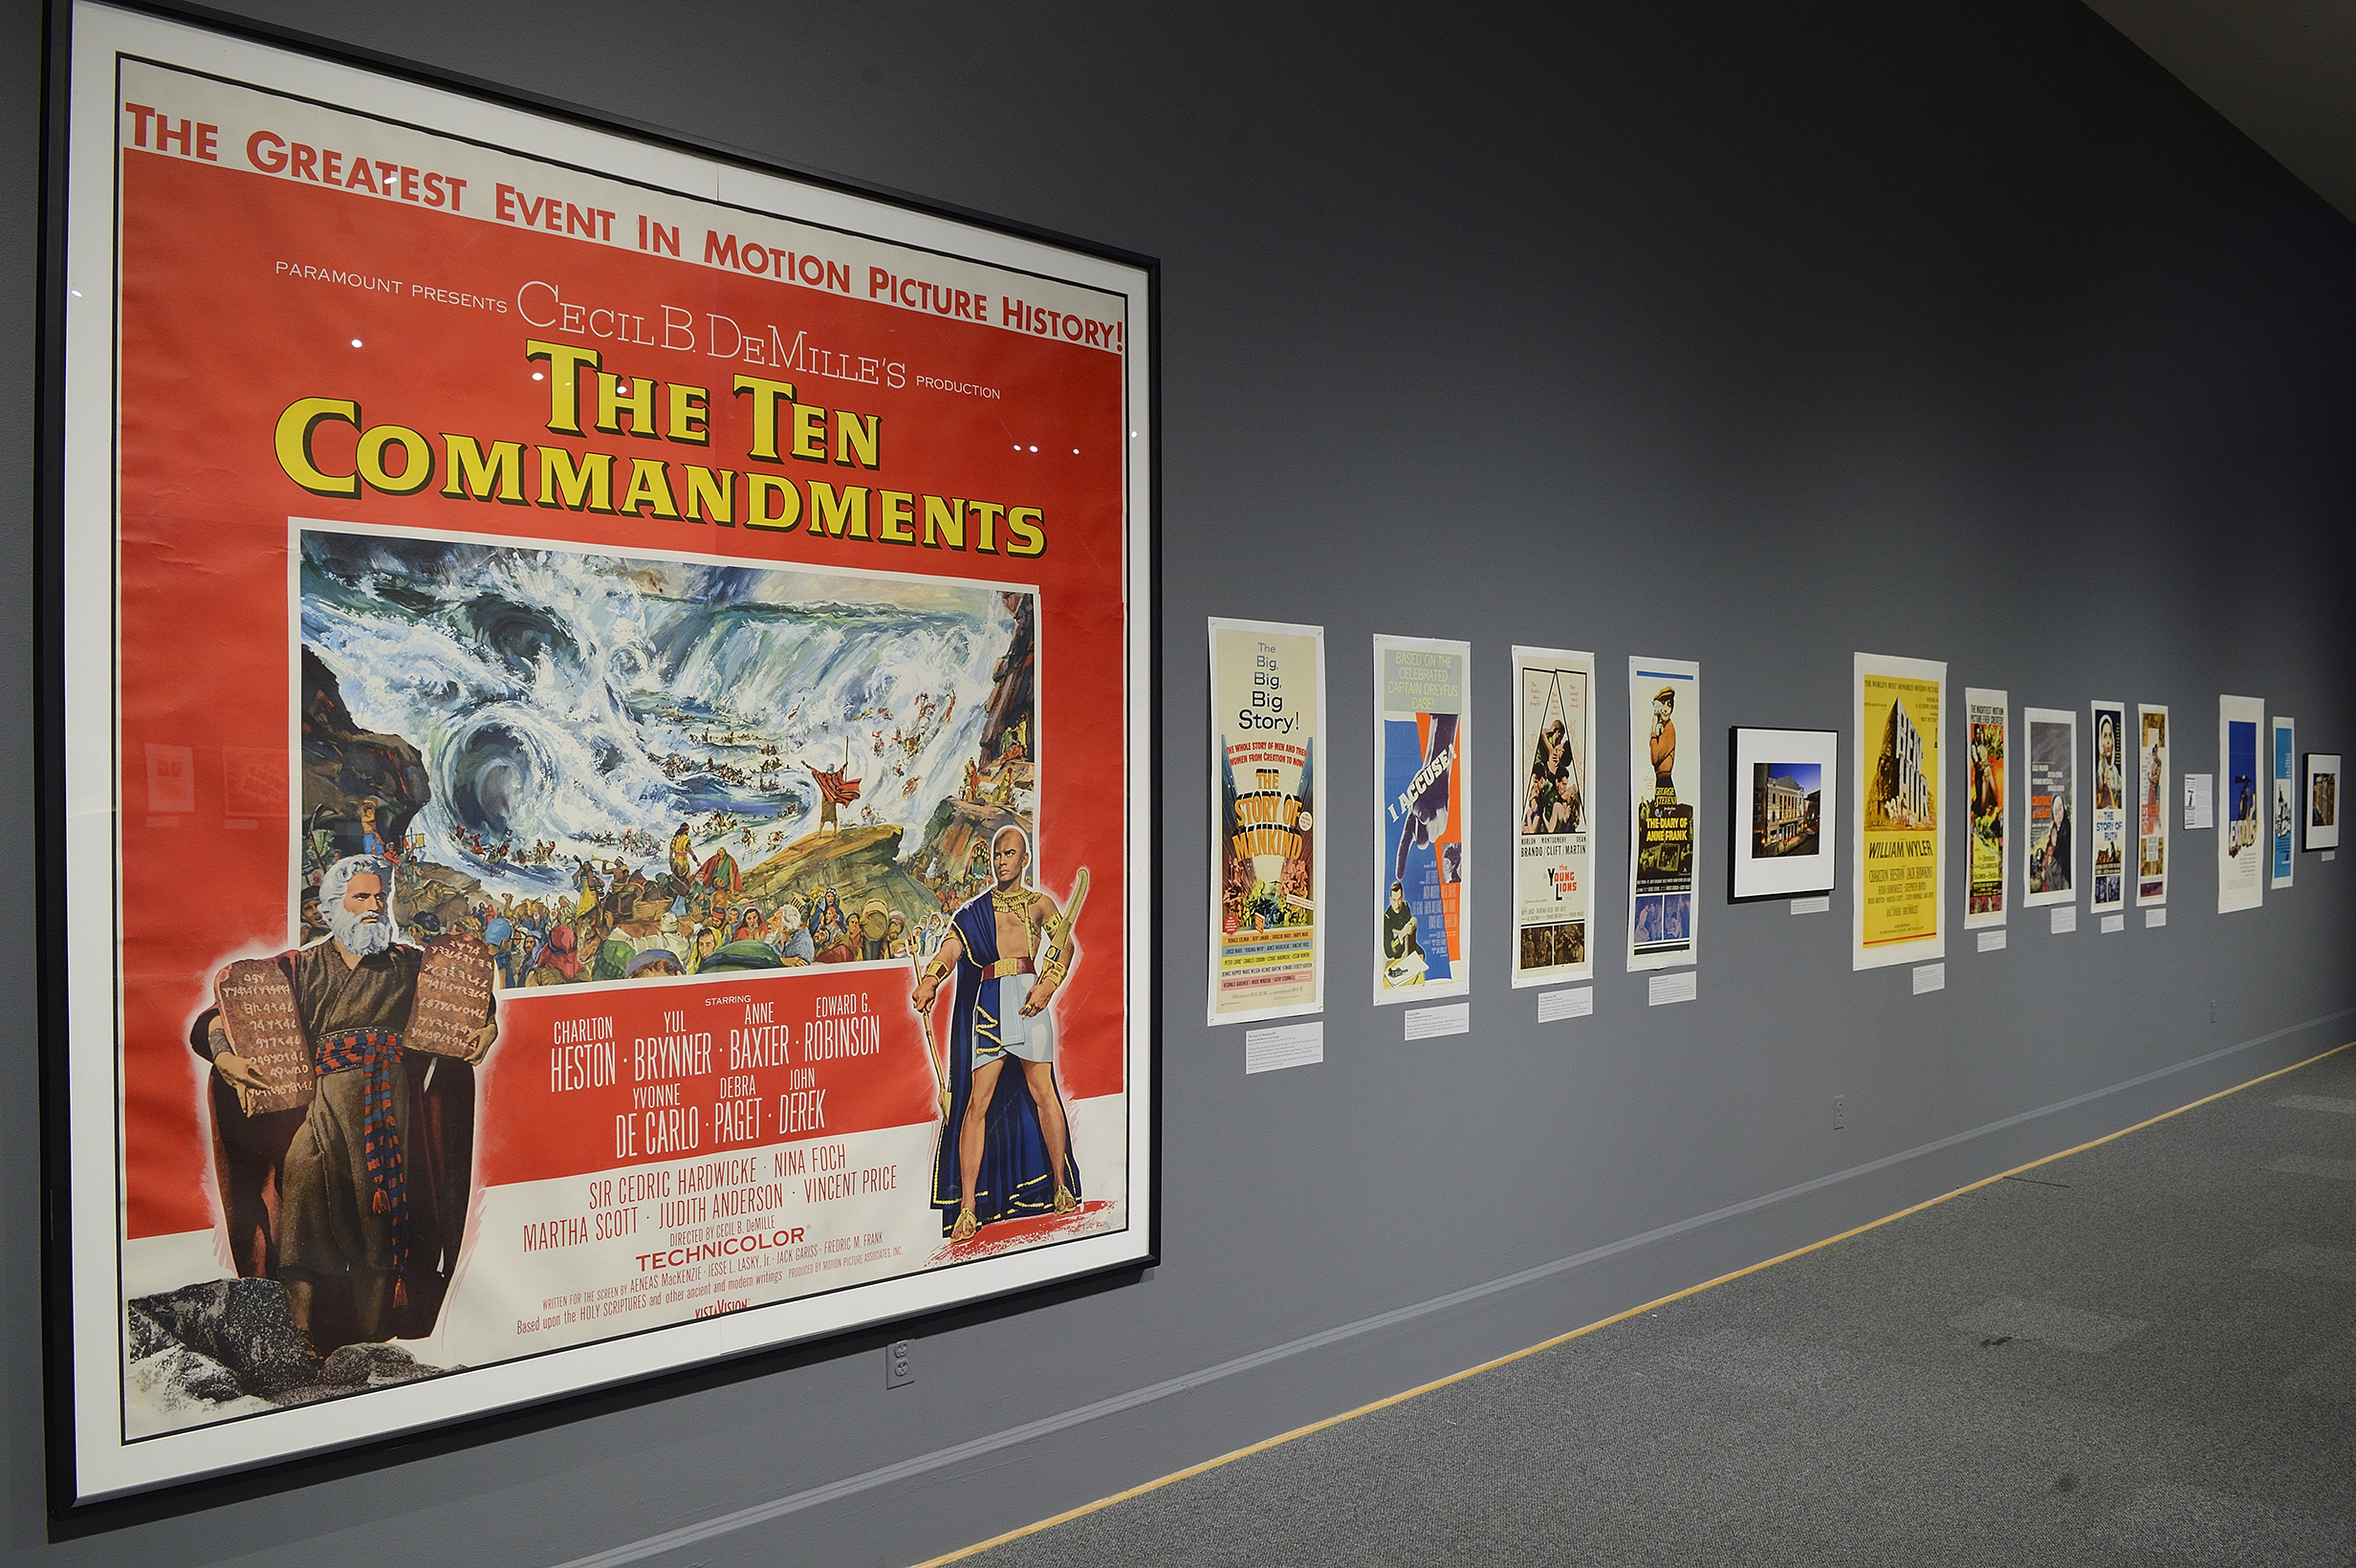 View down wall of various film posters, starting with large 10 Commandments